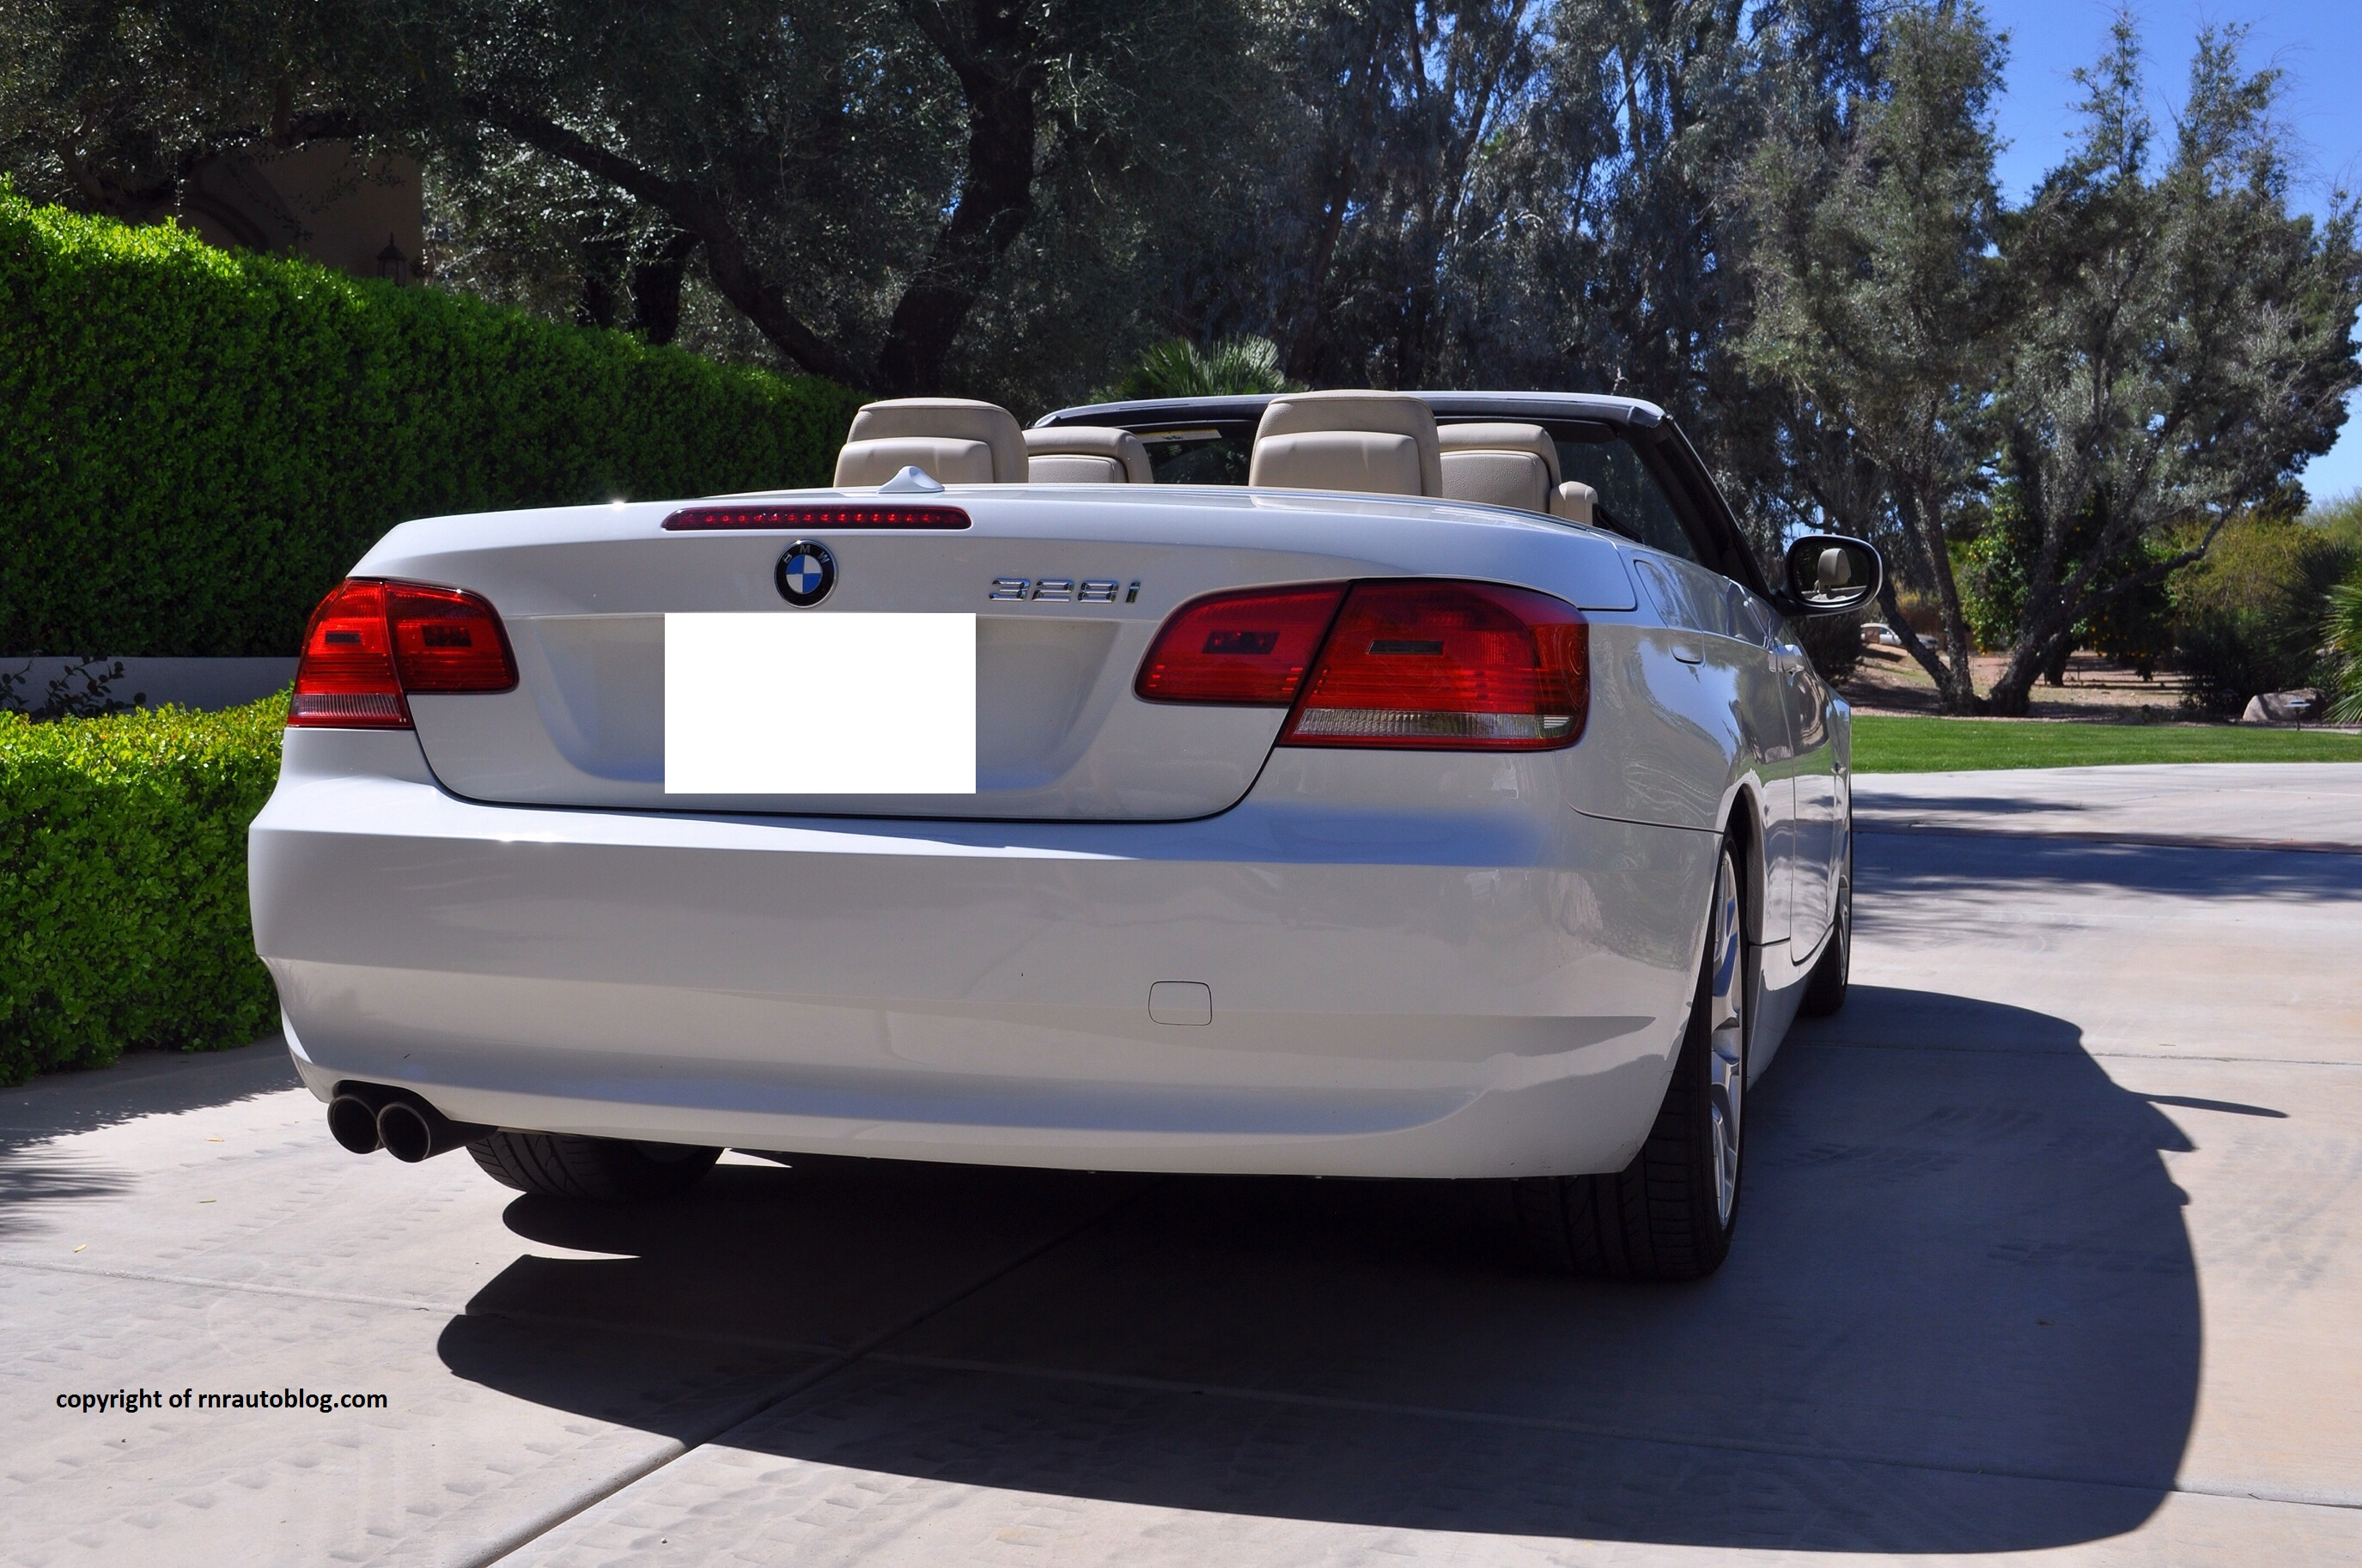 2009 bmw 328i convertible review | rnr automotive blog